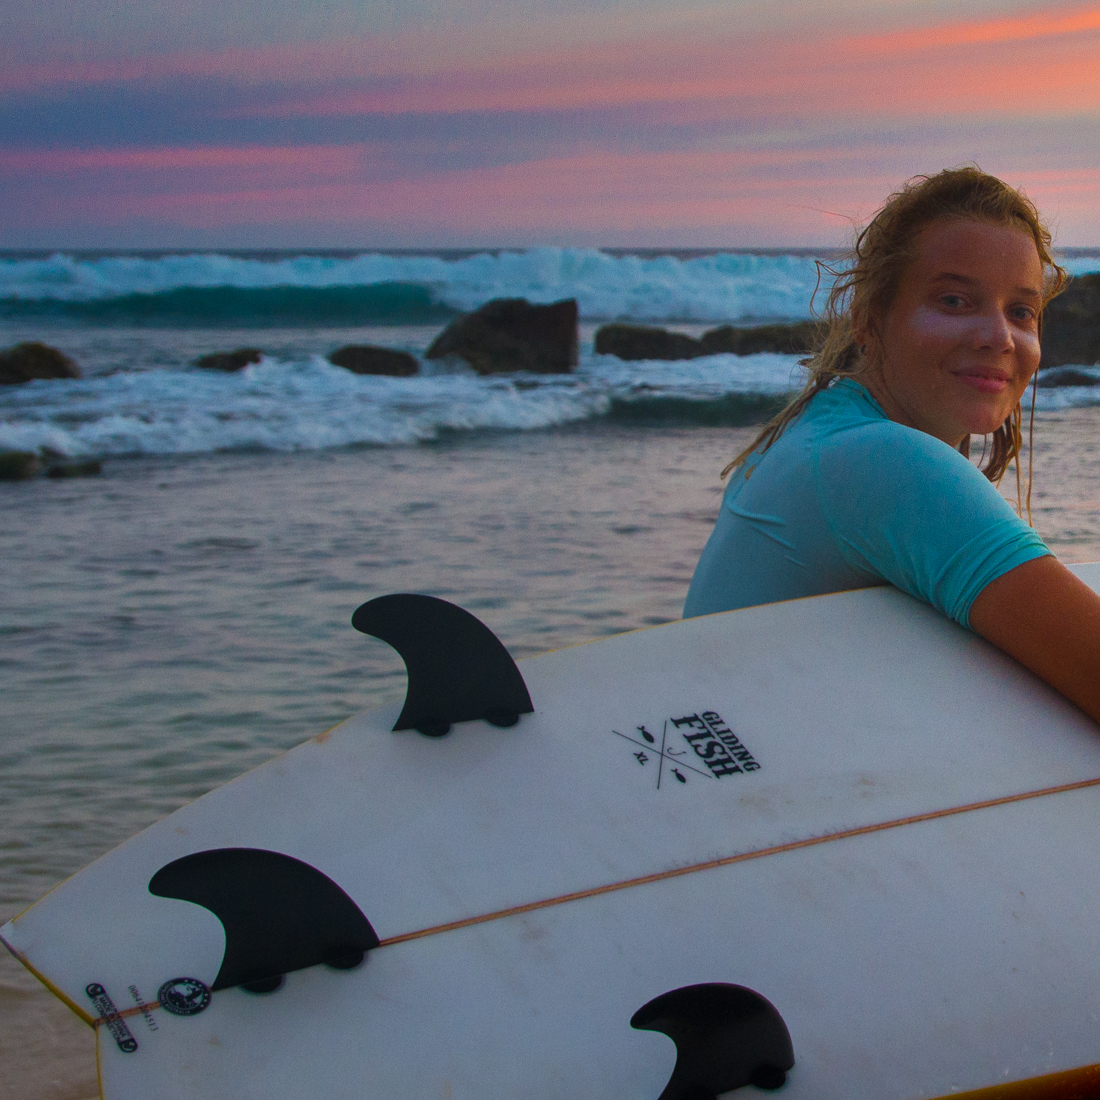 the-sidewalk-secrets-travel-blog-surf-sri-lanka-midigama-mirissa-surfing-sunset-24